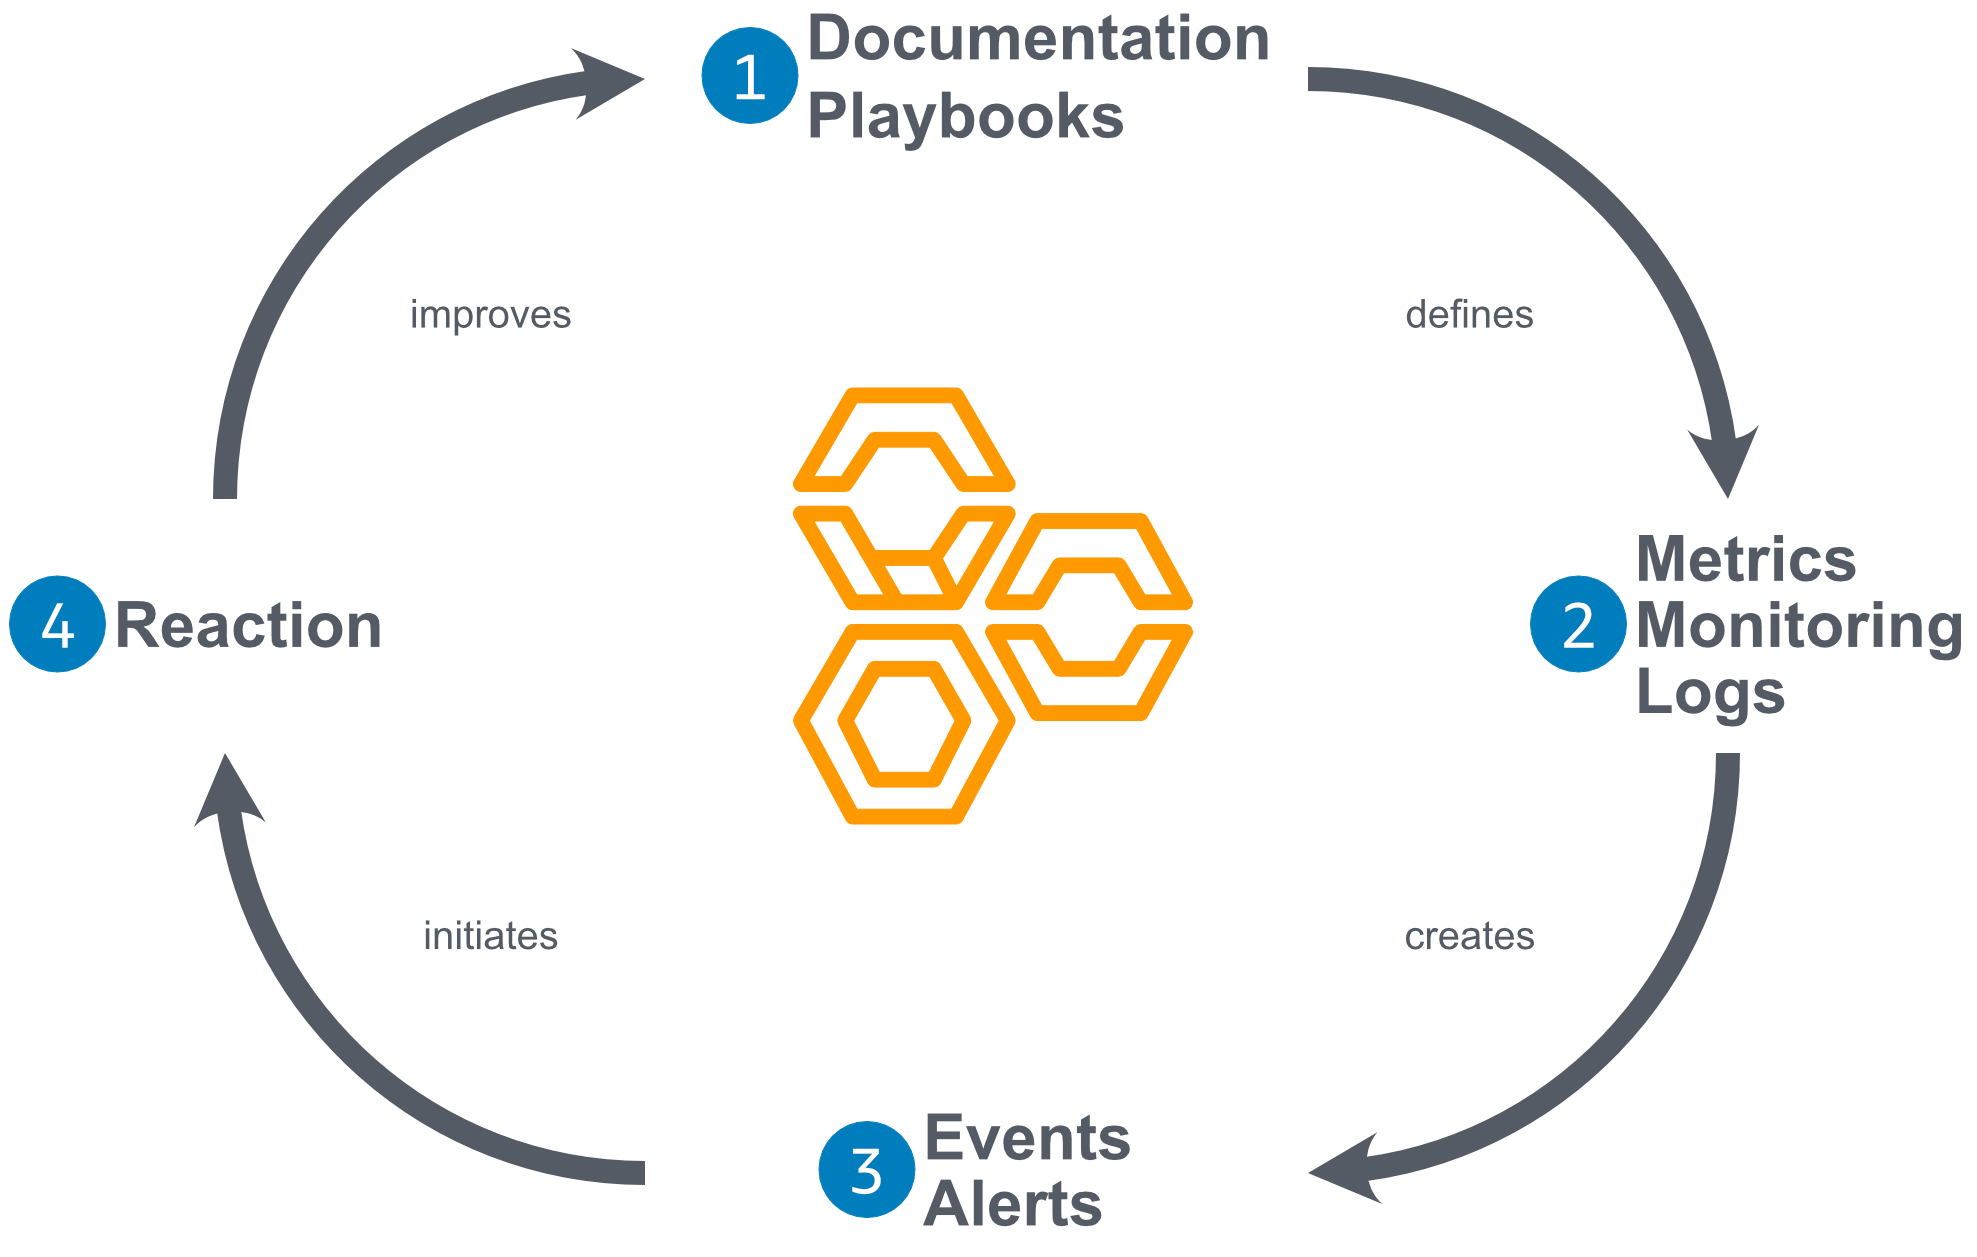 Feedback Loop based on the AWS Well-Architected Framework Review